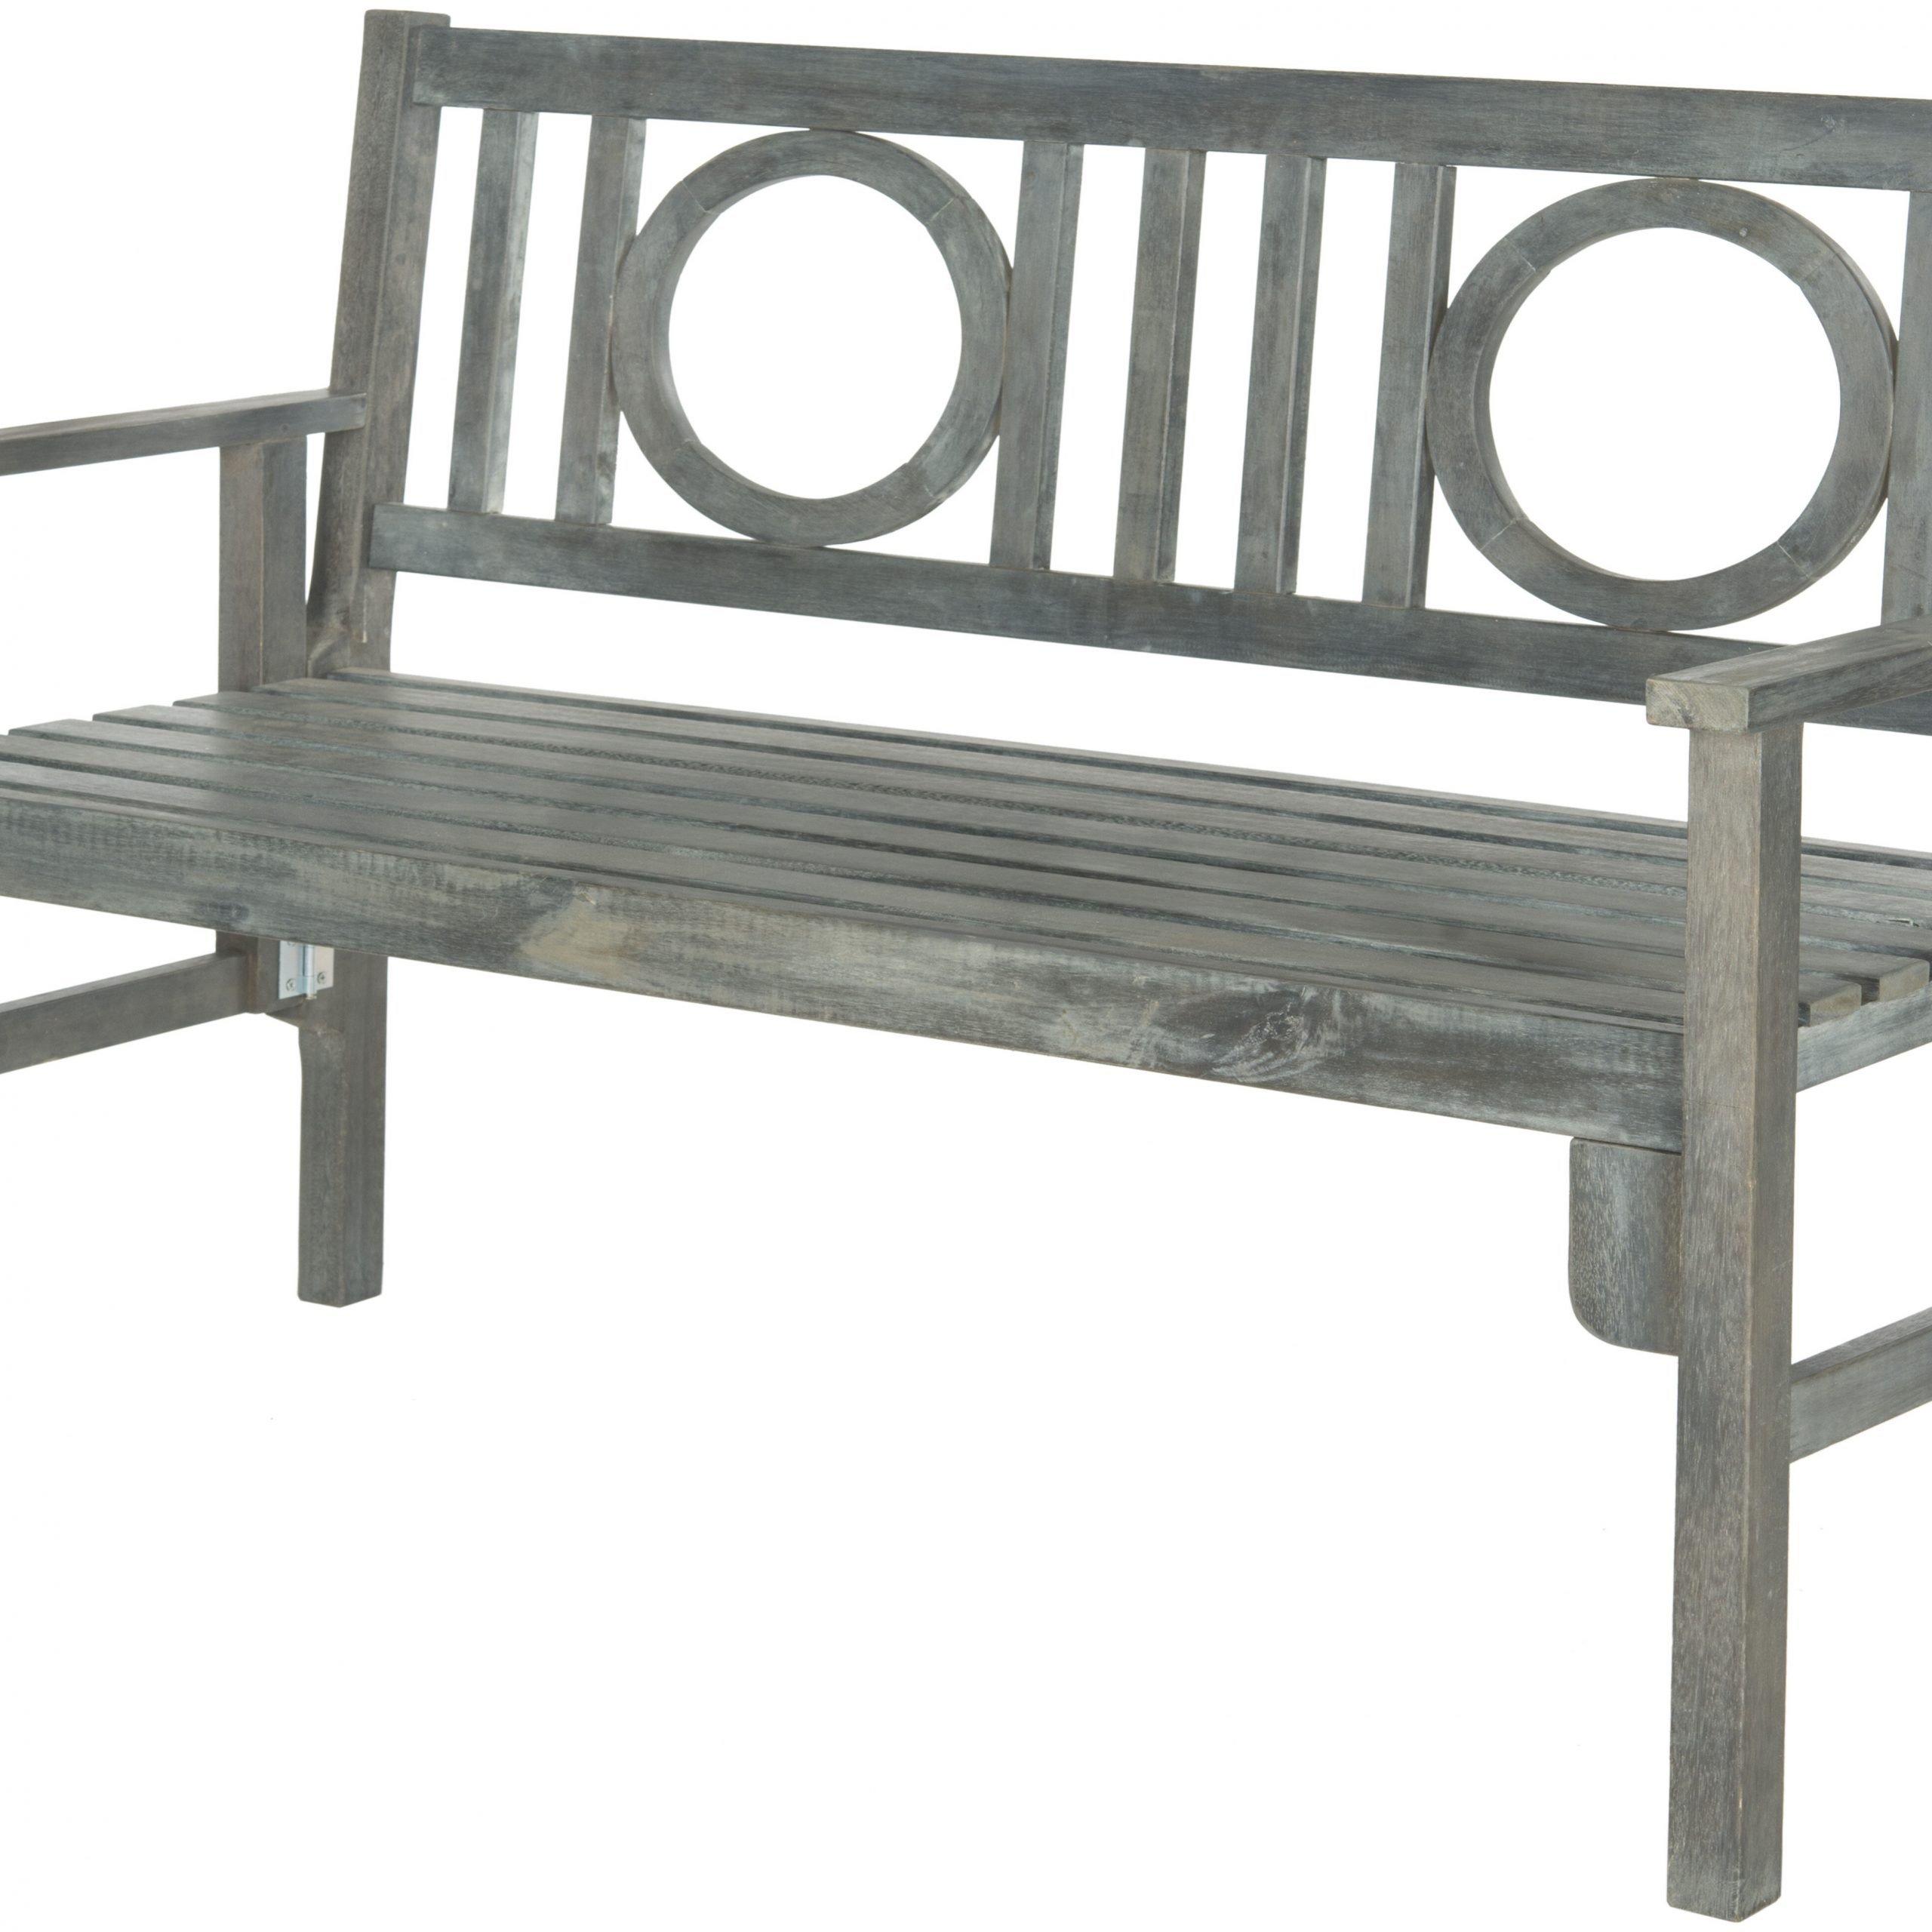 Well Liked Gehlert Traditional Patio Iron Garden Benches For Fort Lauderdale Wooden Garden Bench (View 15 of 30)